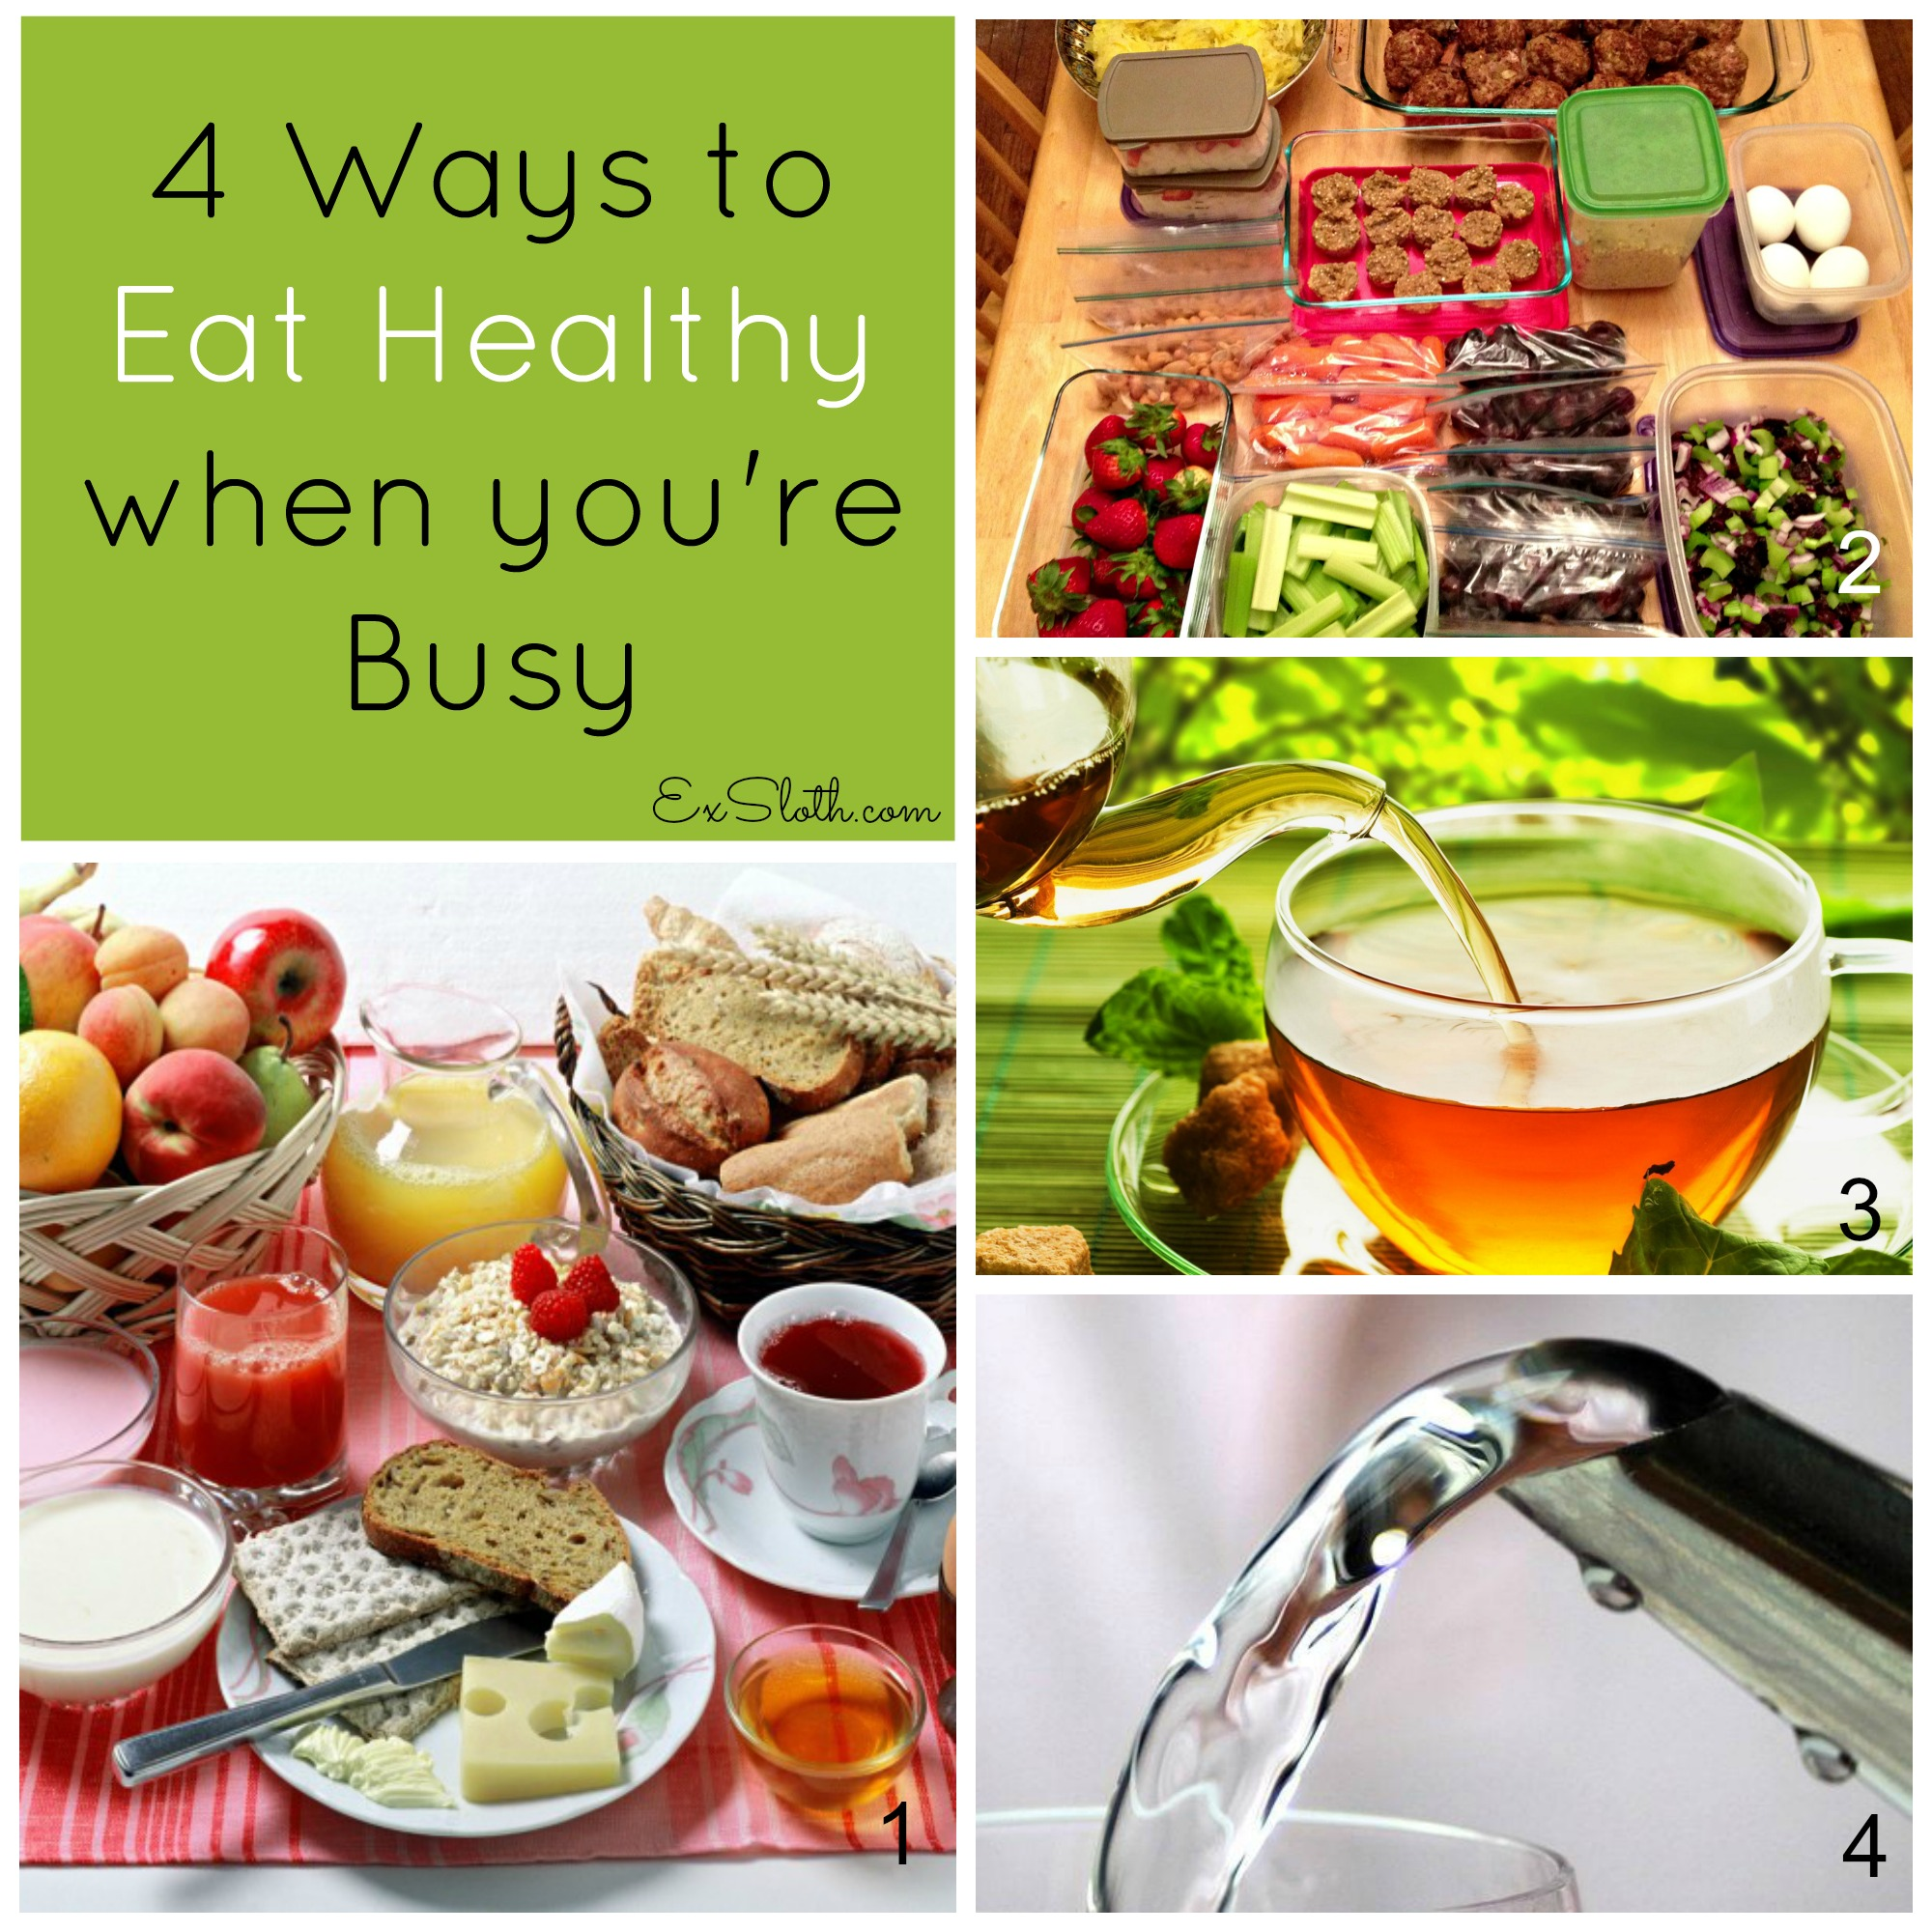 Busy stay fueled the healthy way diary of an exsloth ccuart Images